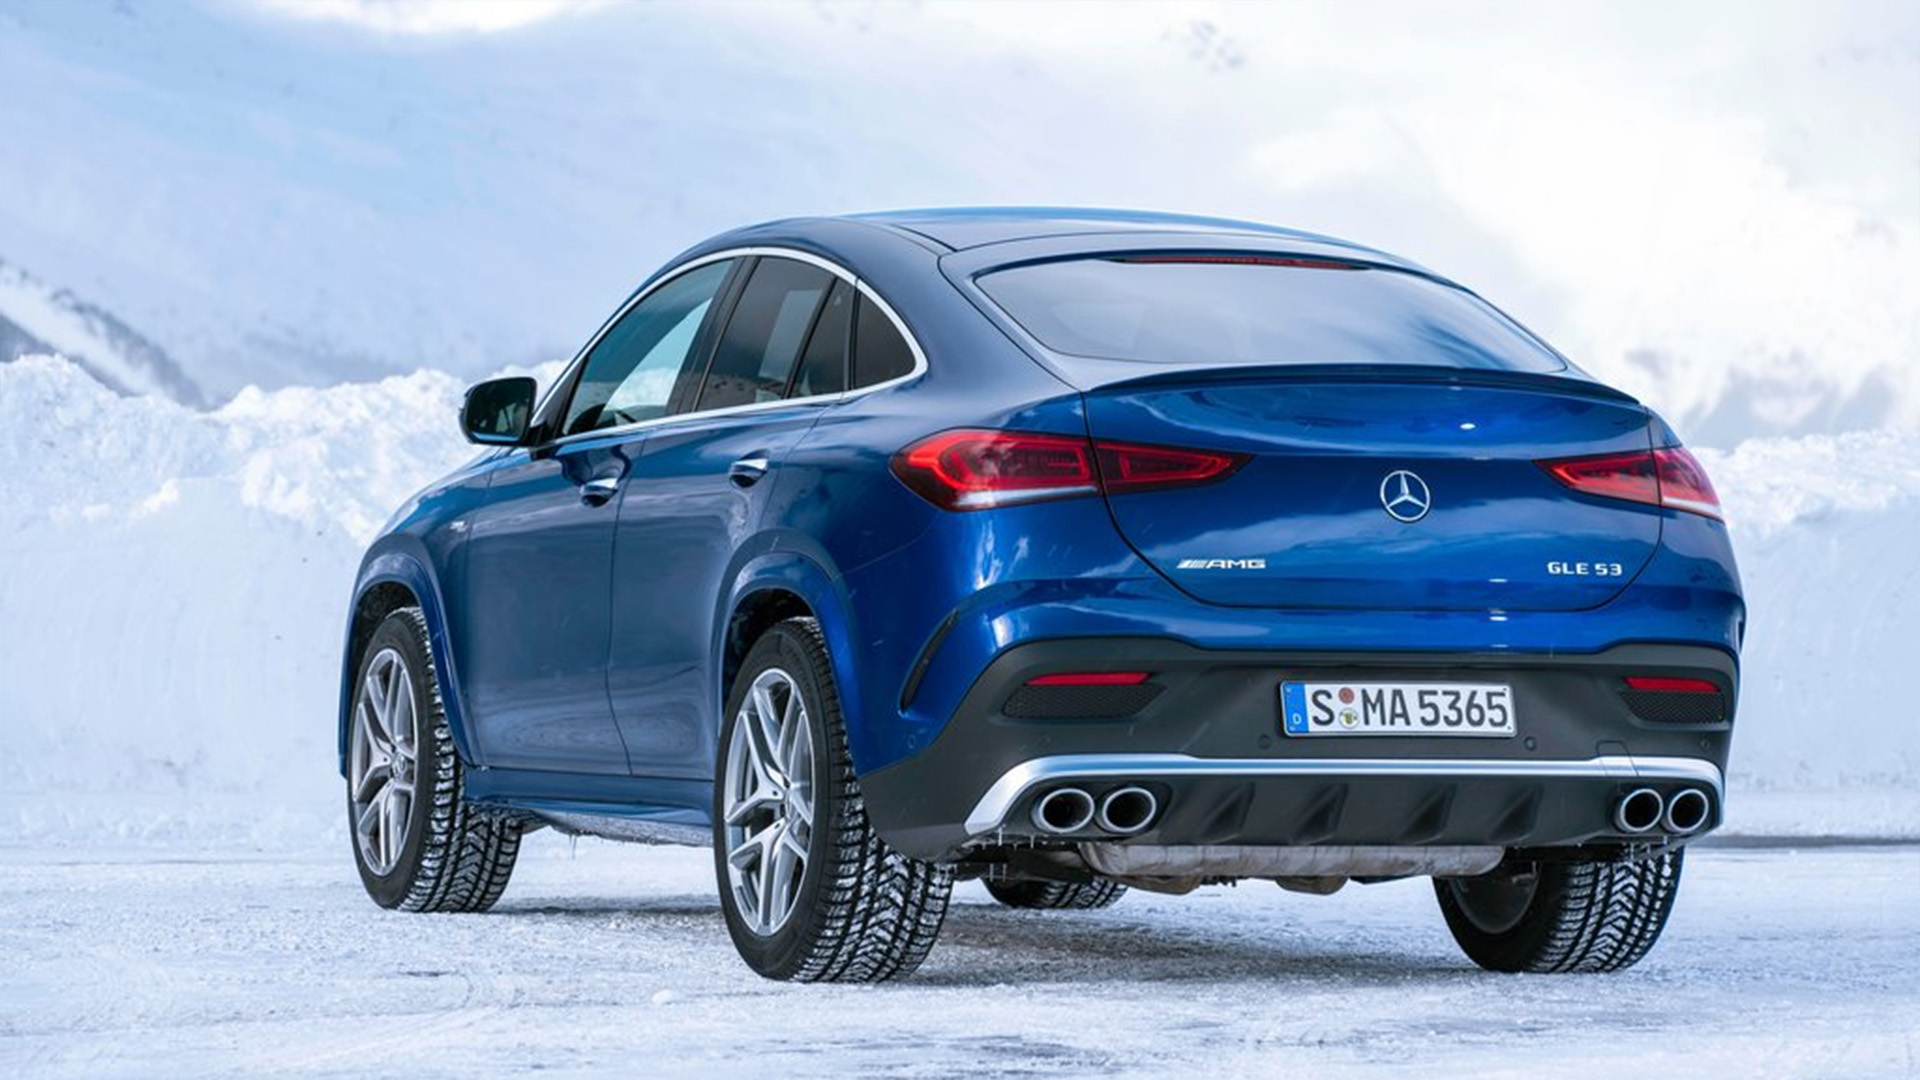 Mercedes-Benz GLE53 AMG 4Matic Coupe